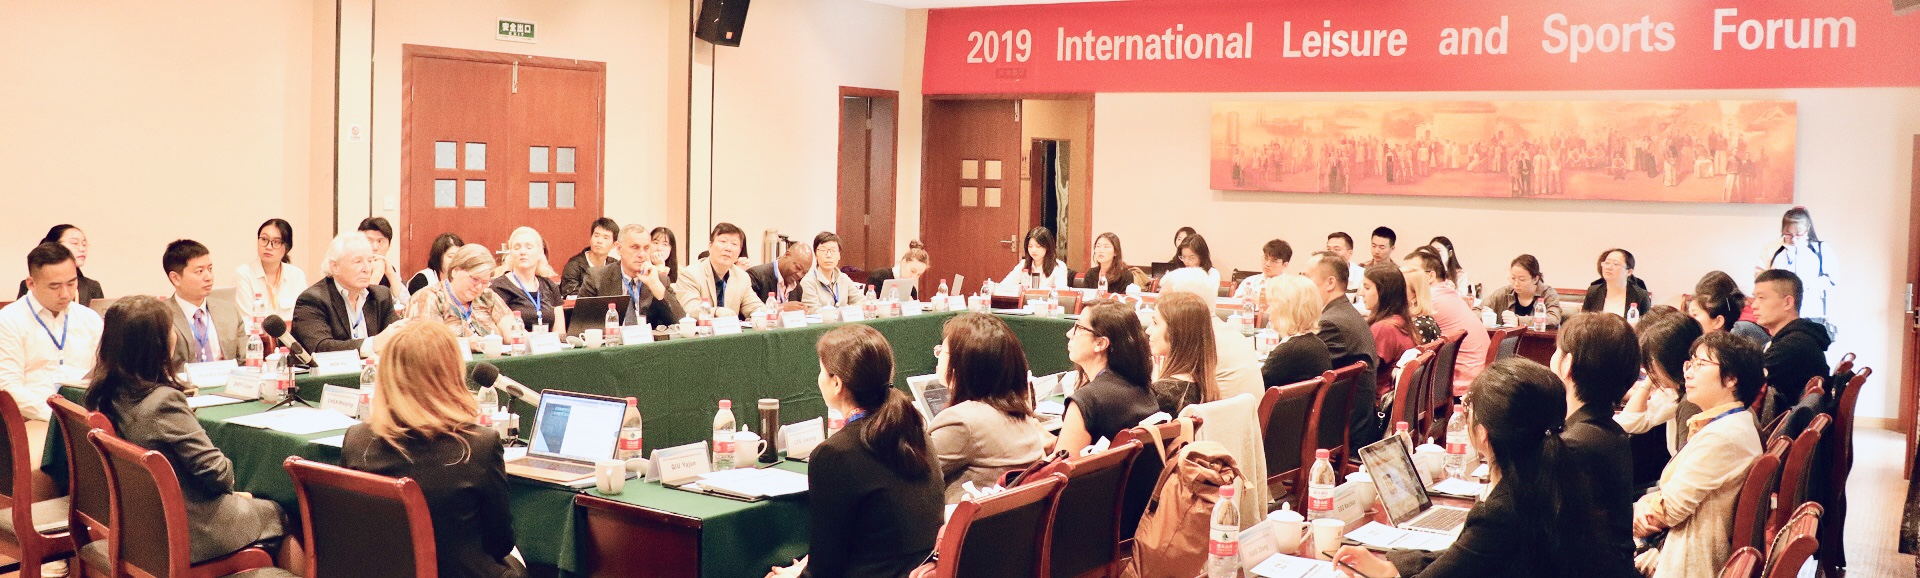 2019 International Leisure and Sports Forum in Hangzhou